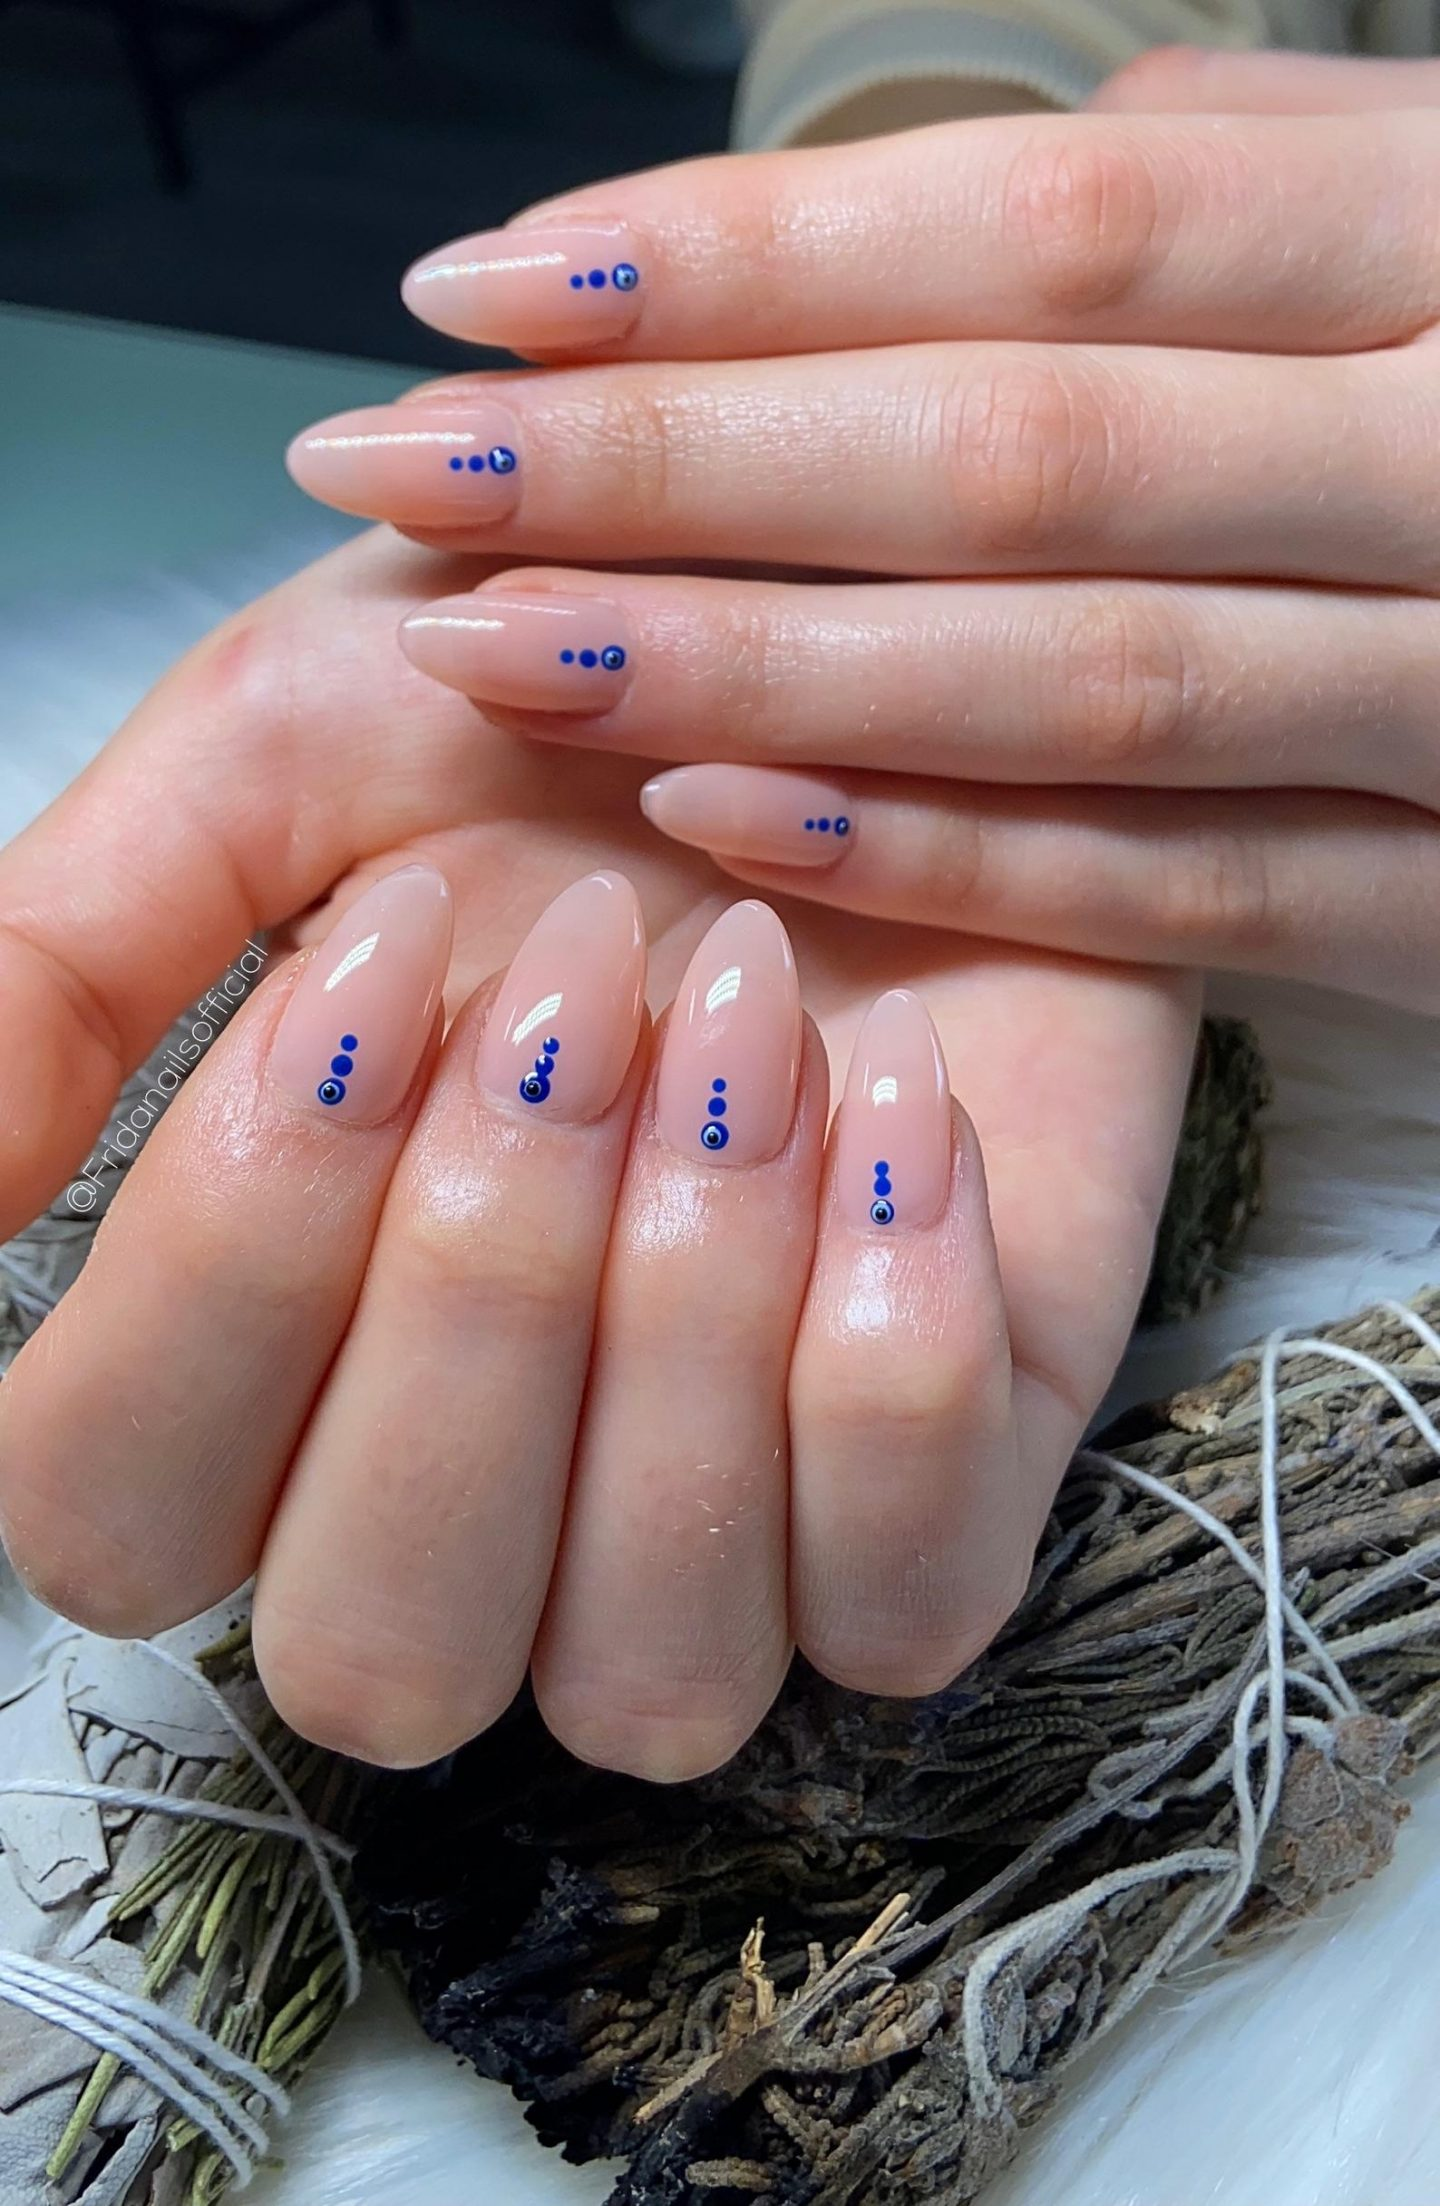 Minimalist nails with blue dots